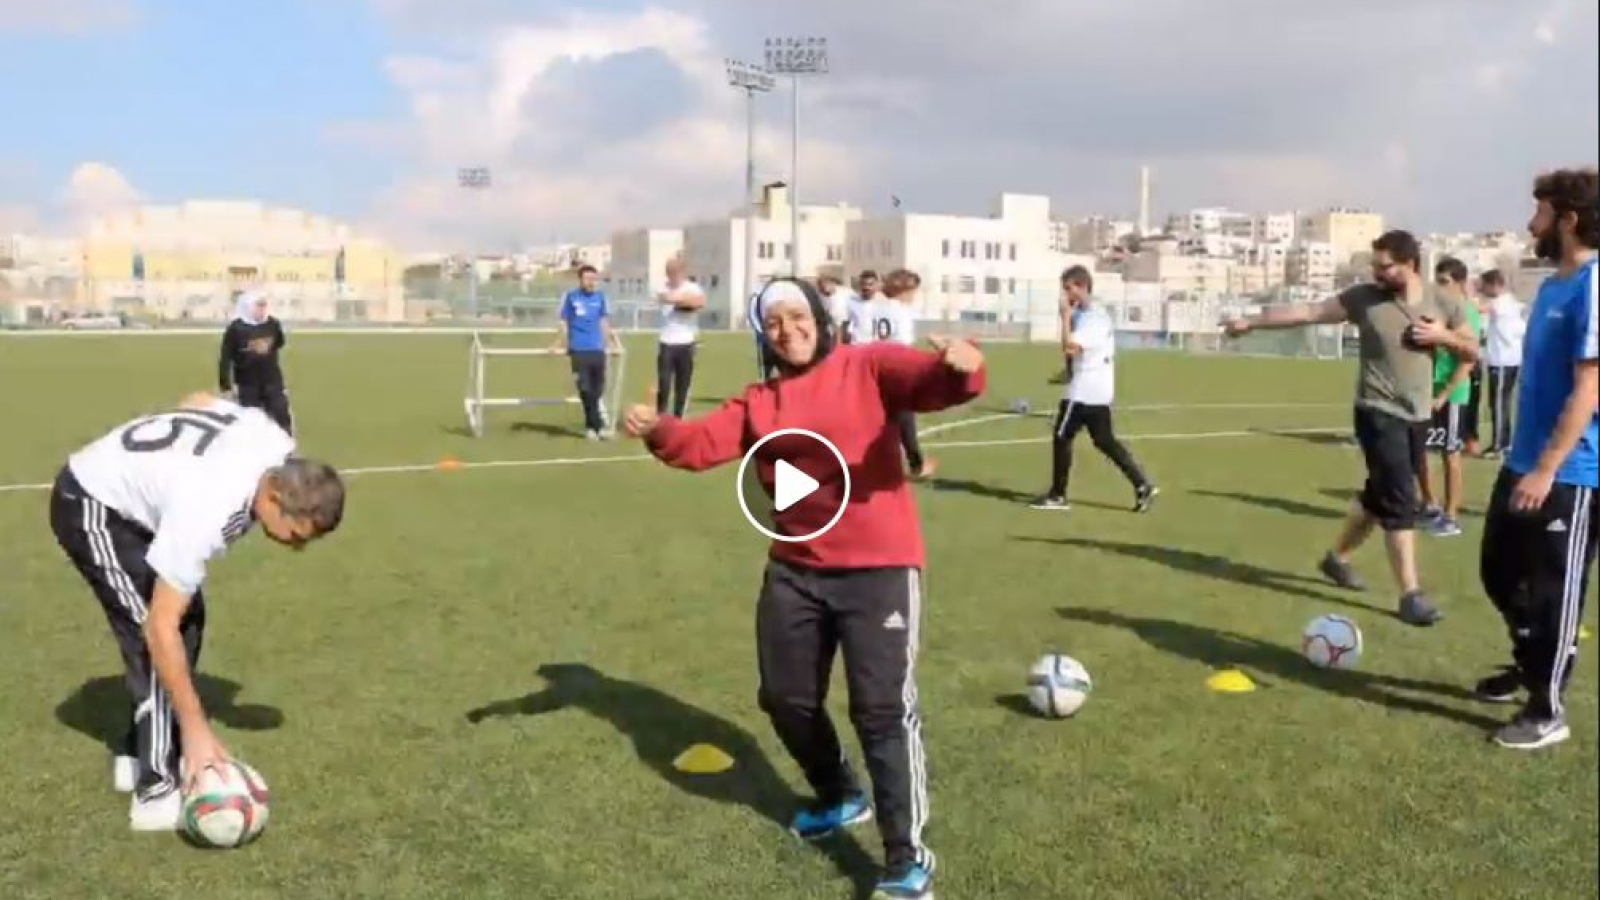 Sports to bring together students from both, host and refugee communities.